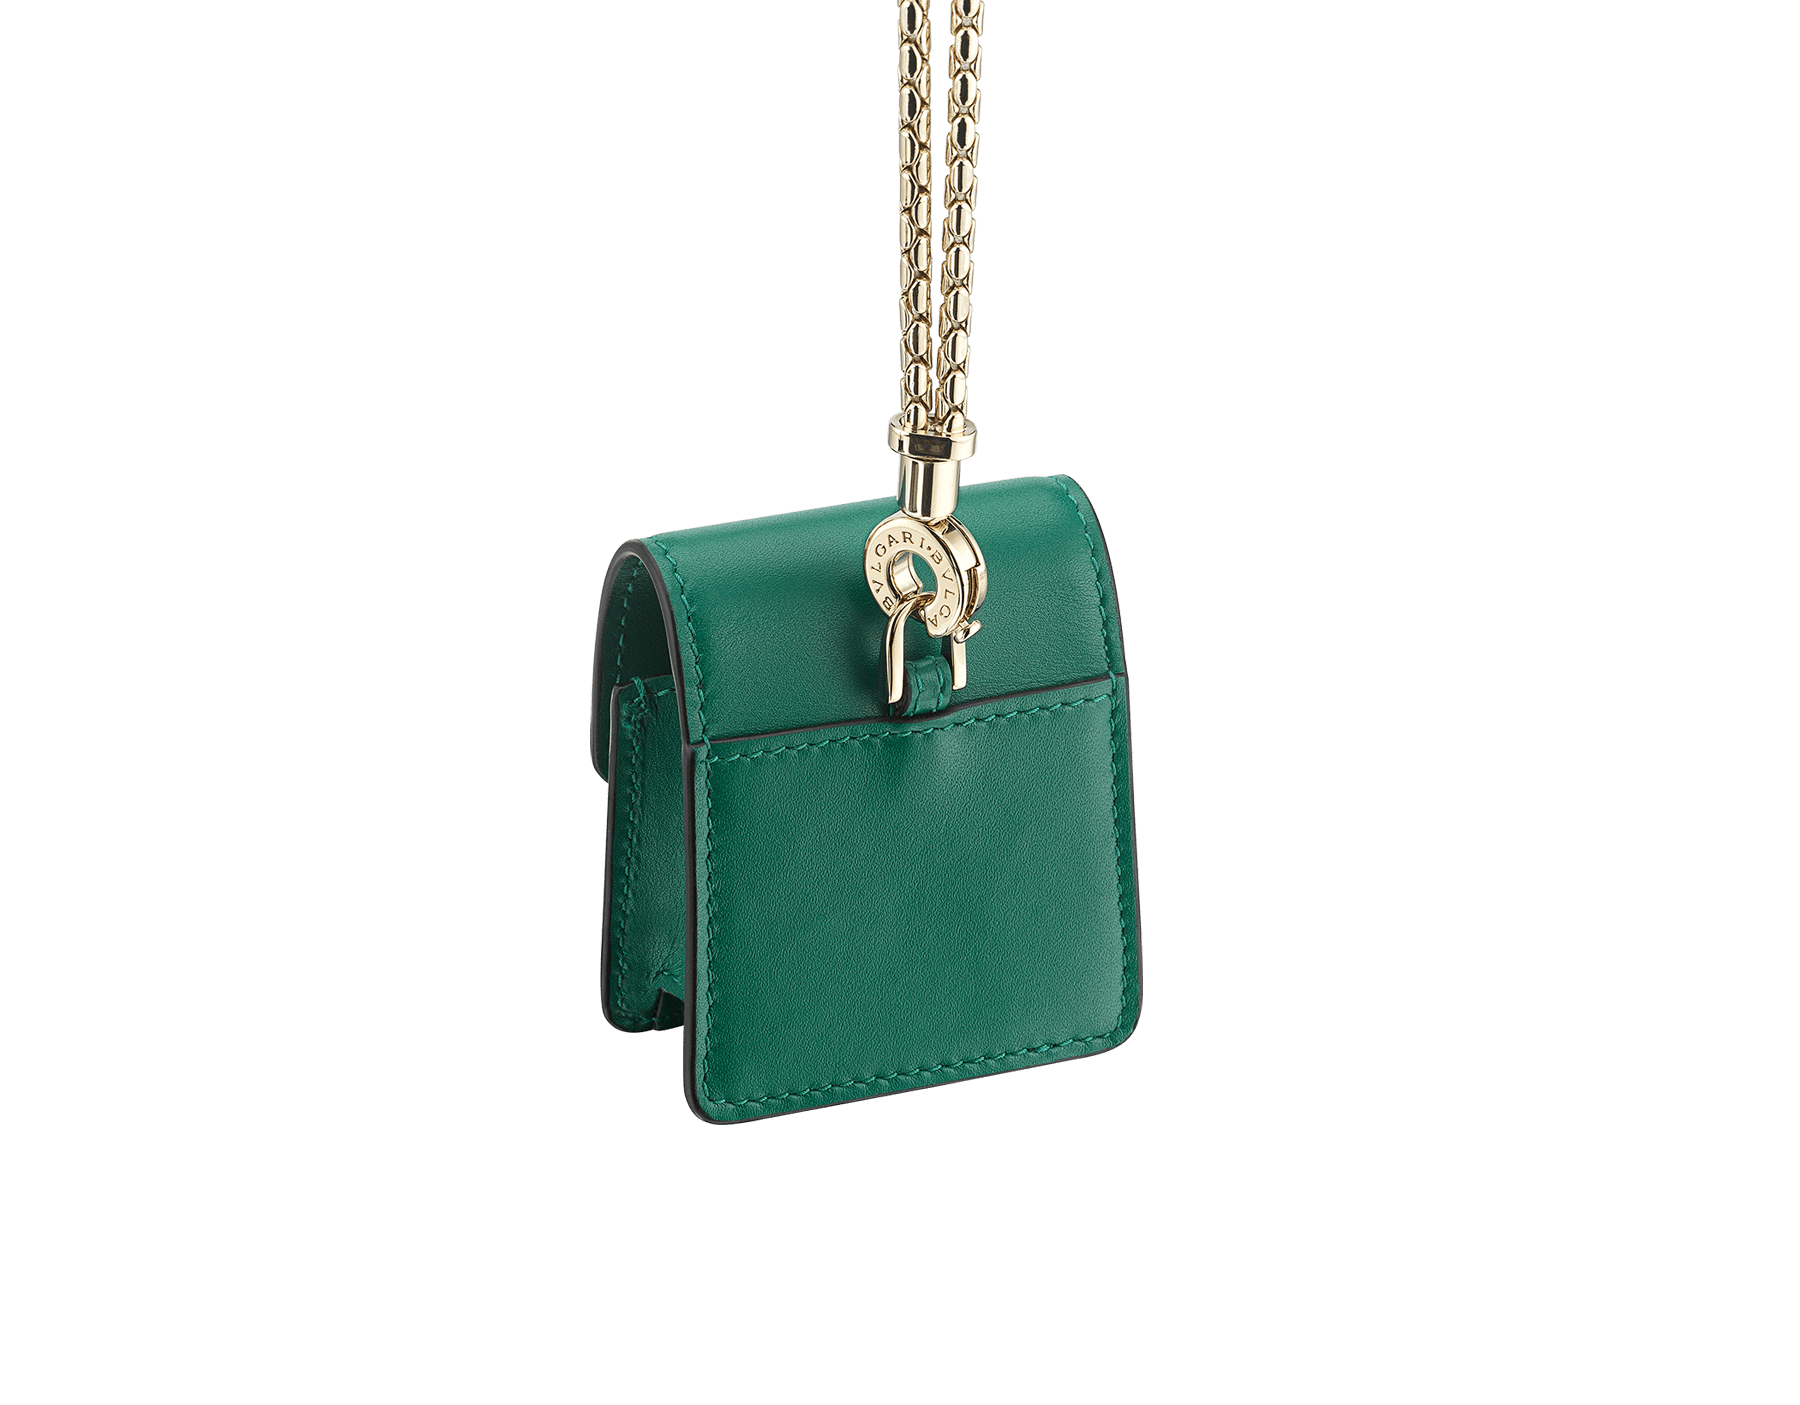 Serpenti Forever Earbuds holder in emerald green calf leather. Light gold plated brass Serpenti head closure in black and white enamel, with green enamel eyes. 289095 image 3